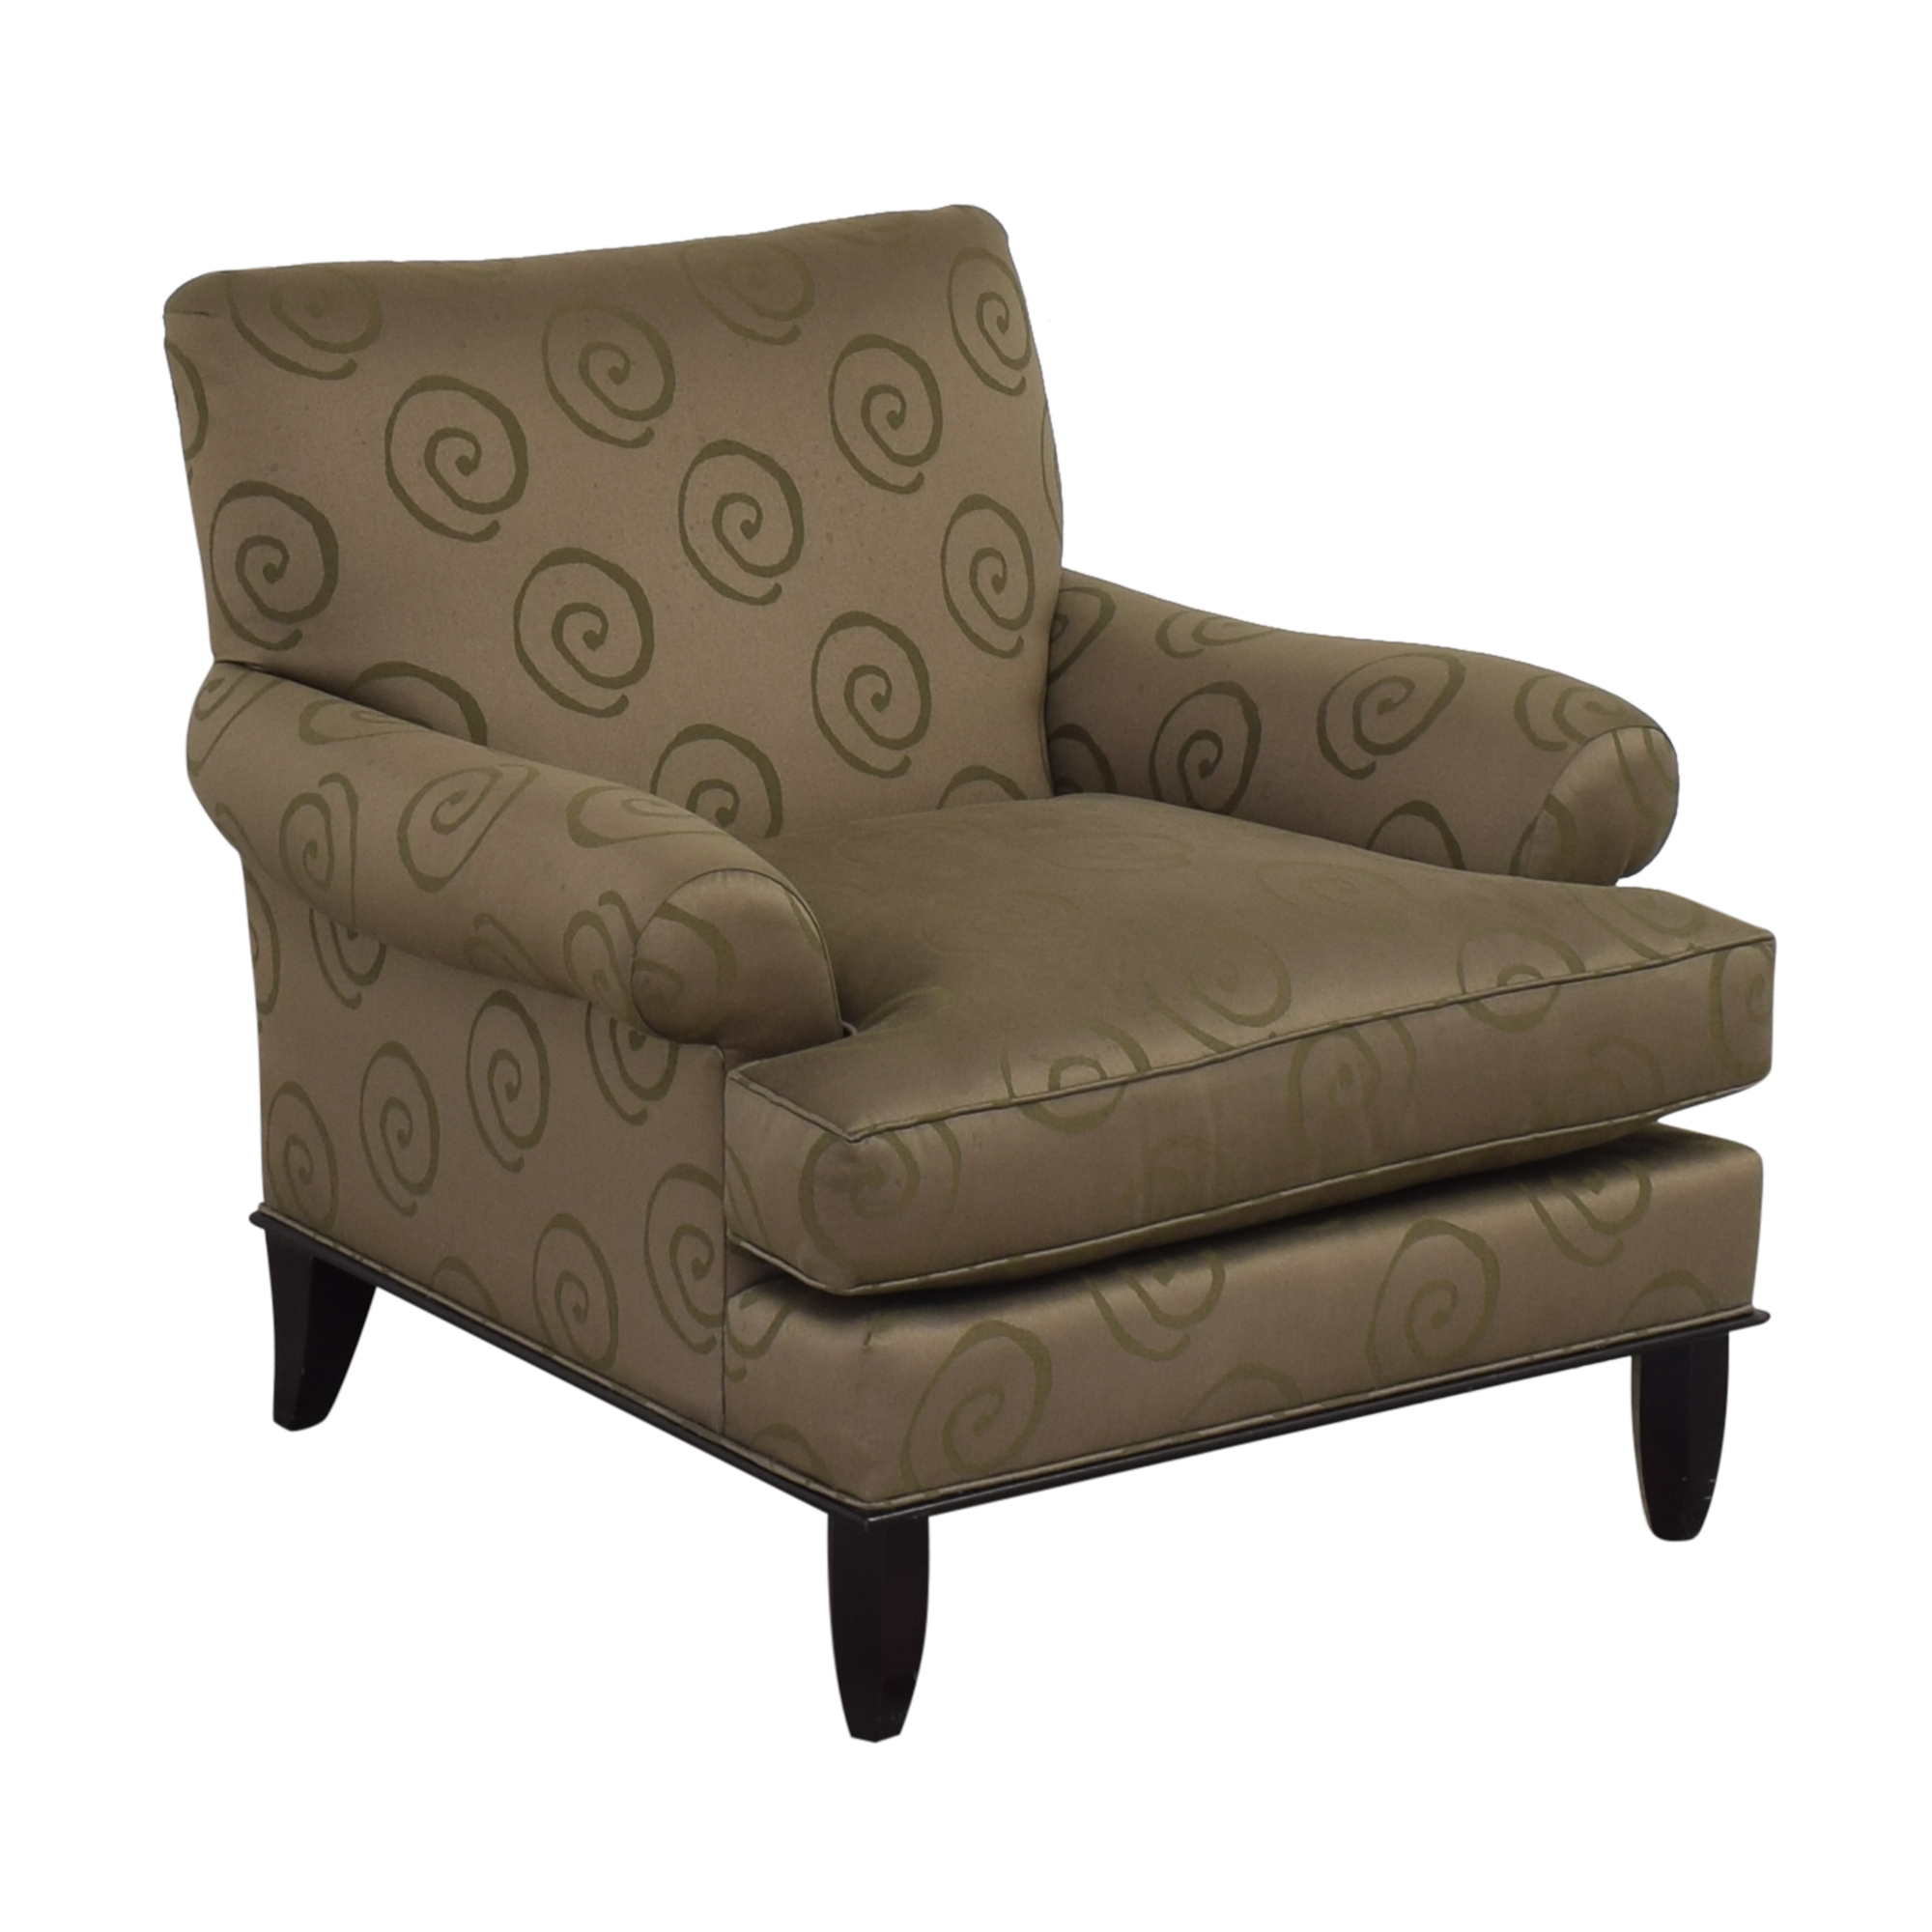 Baker Furniture Baker Roll Arm Lounge Chair ct